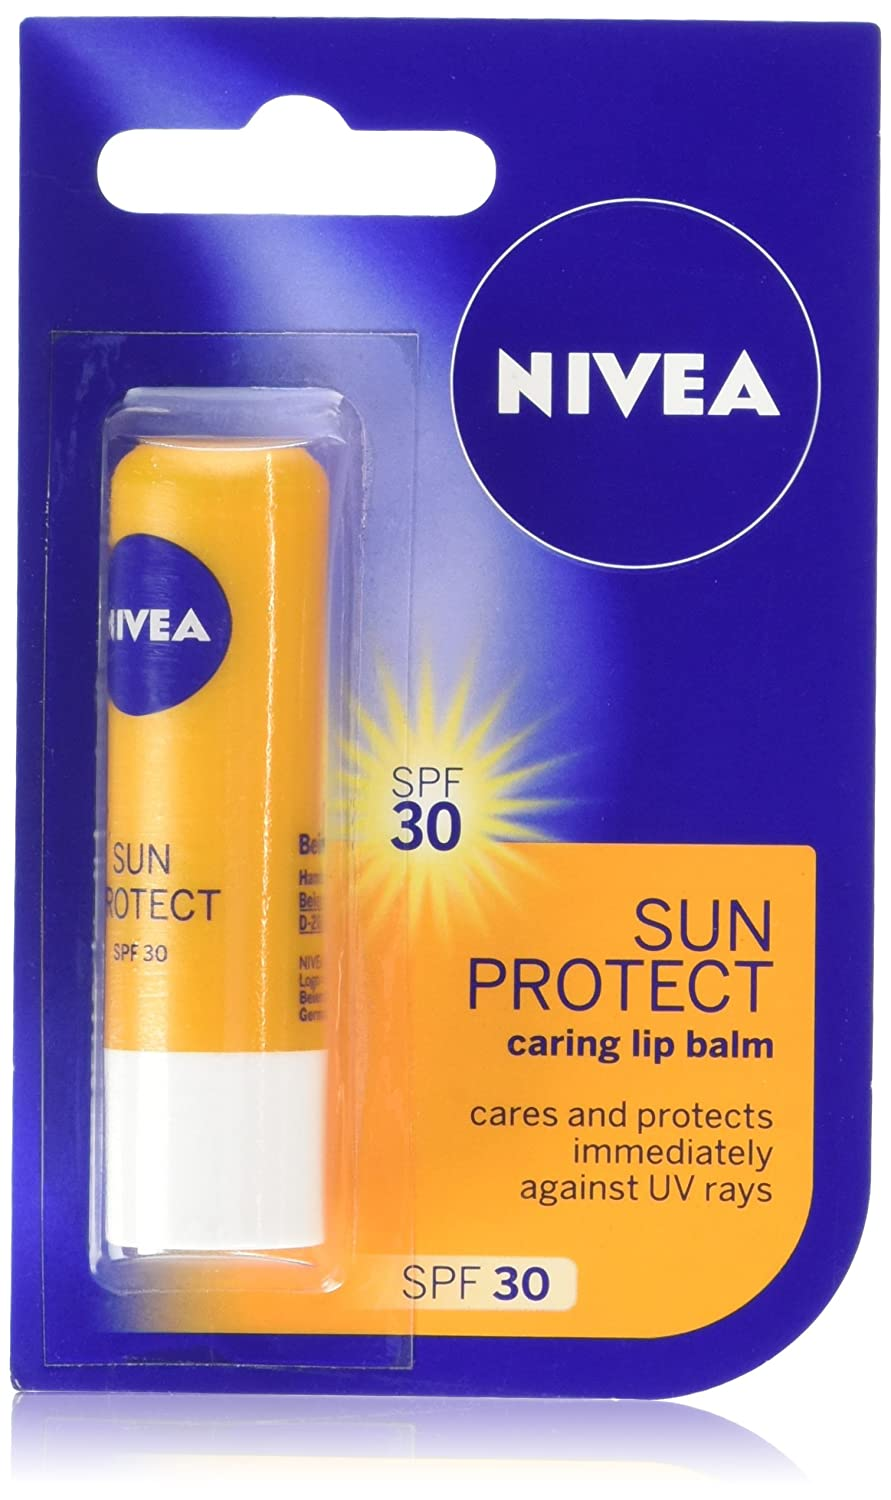 NIVEA SUN Lip Balm with SPF 30, 4.8 g Beiersdorf Uk Ltd 2541126